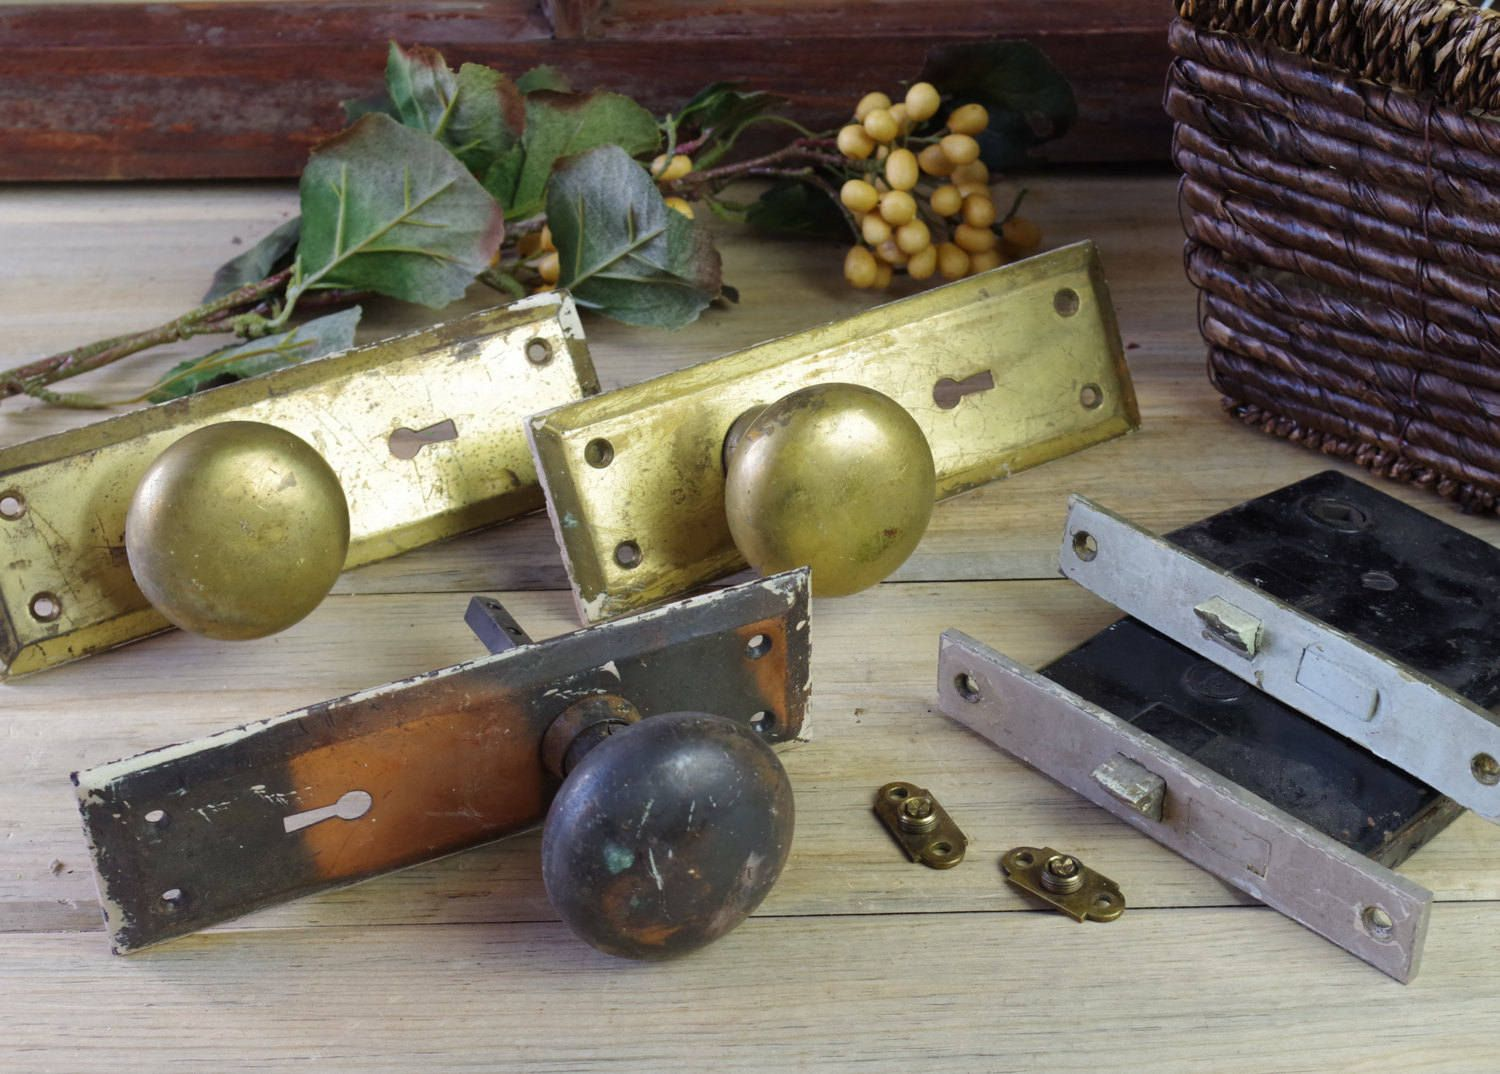 Antique Door Hardware, Vintage Hardware, Home Restoration, Salvaged  Hardware, Antique Door Knobs, Vintage Door Plate, Door Restoration #8-41 - Antique Door Hardware, Vintage Hardware, Home Restoration, Salvaged